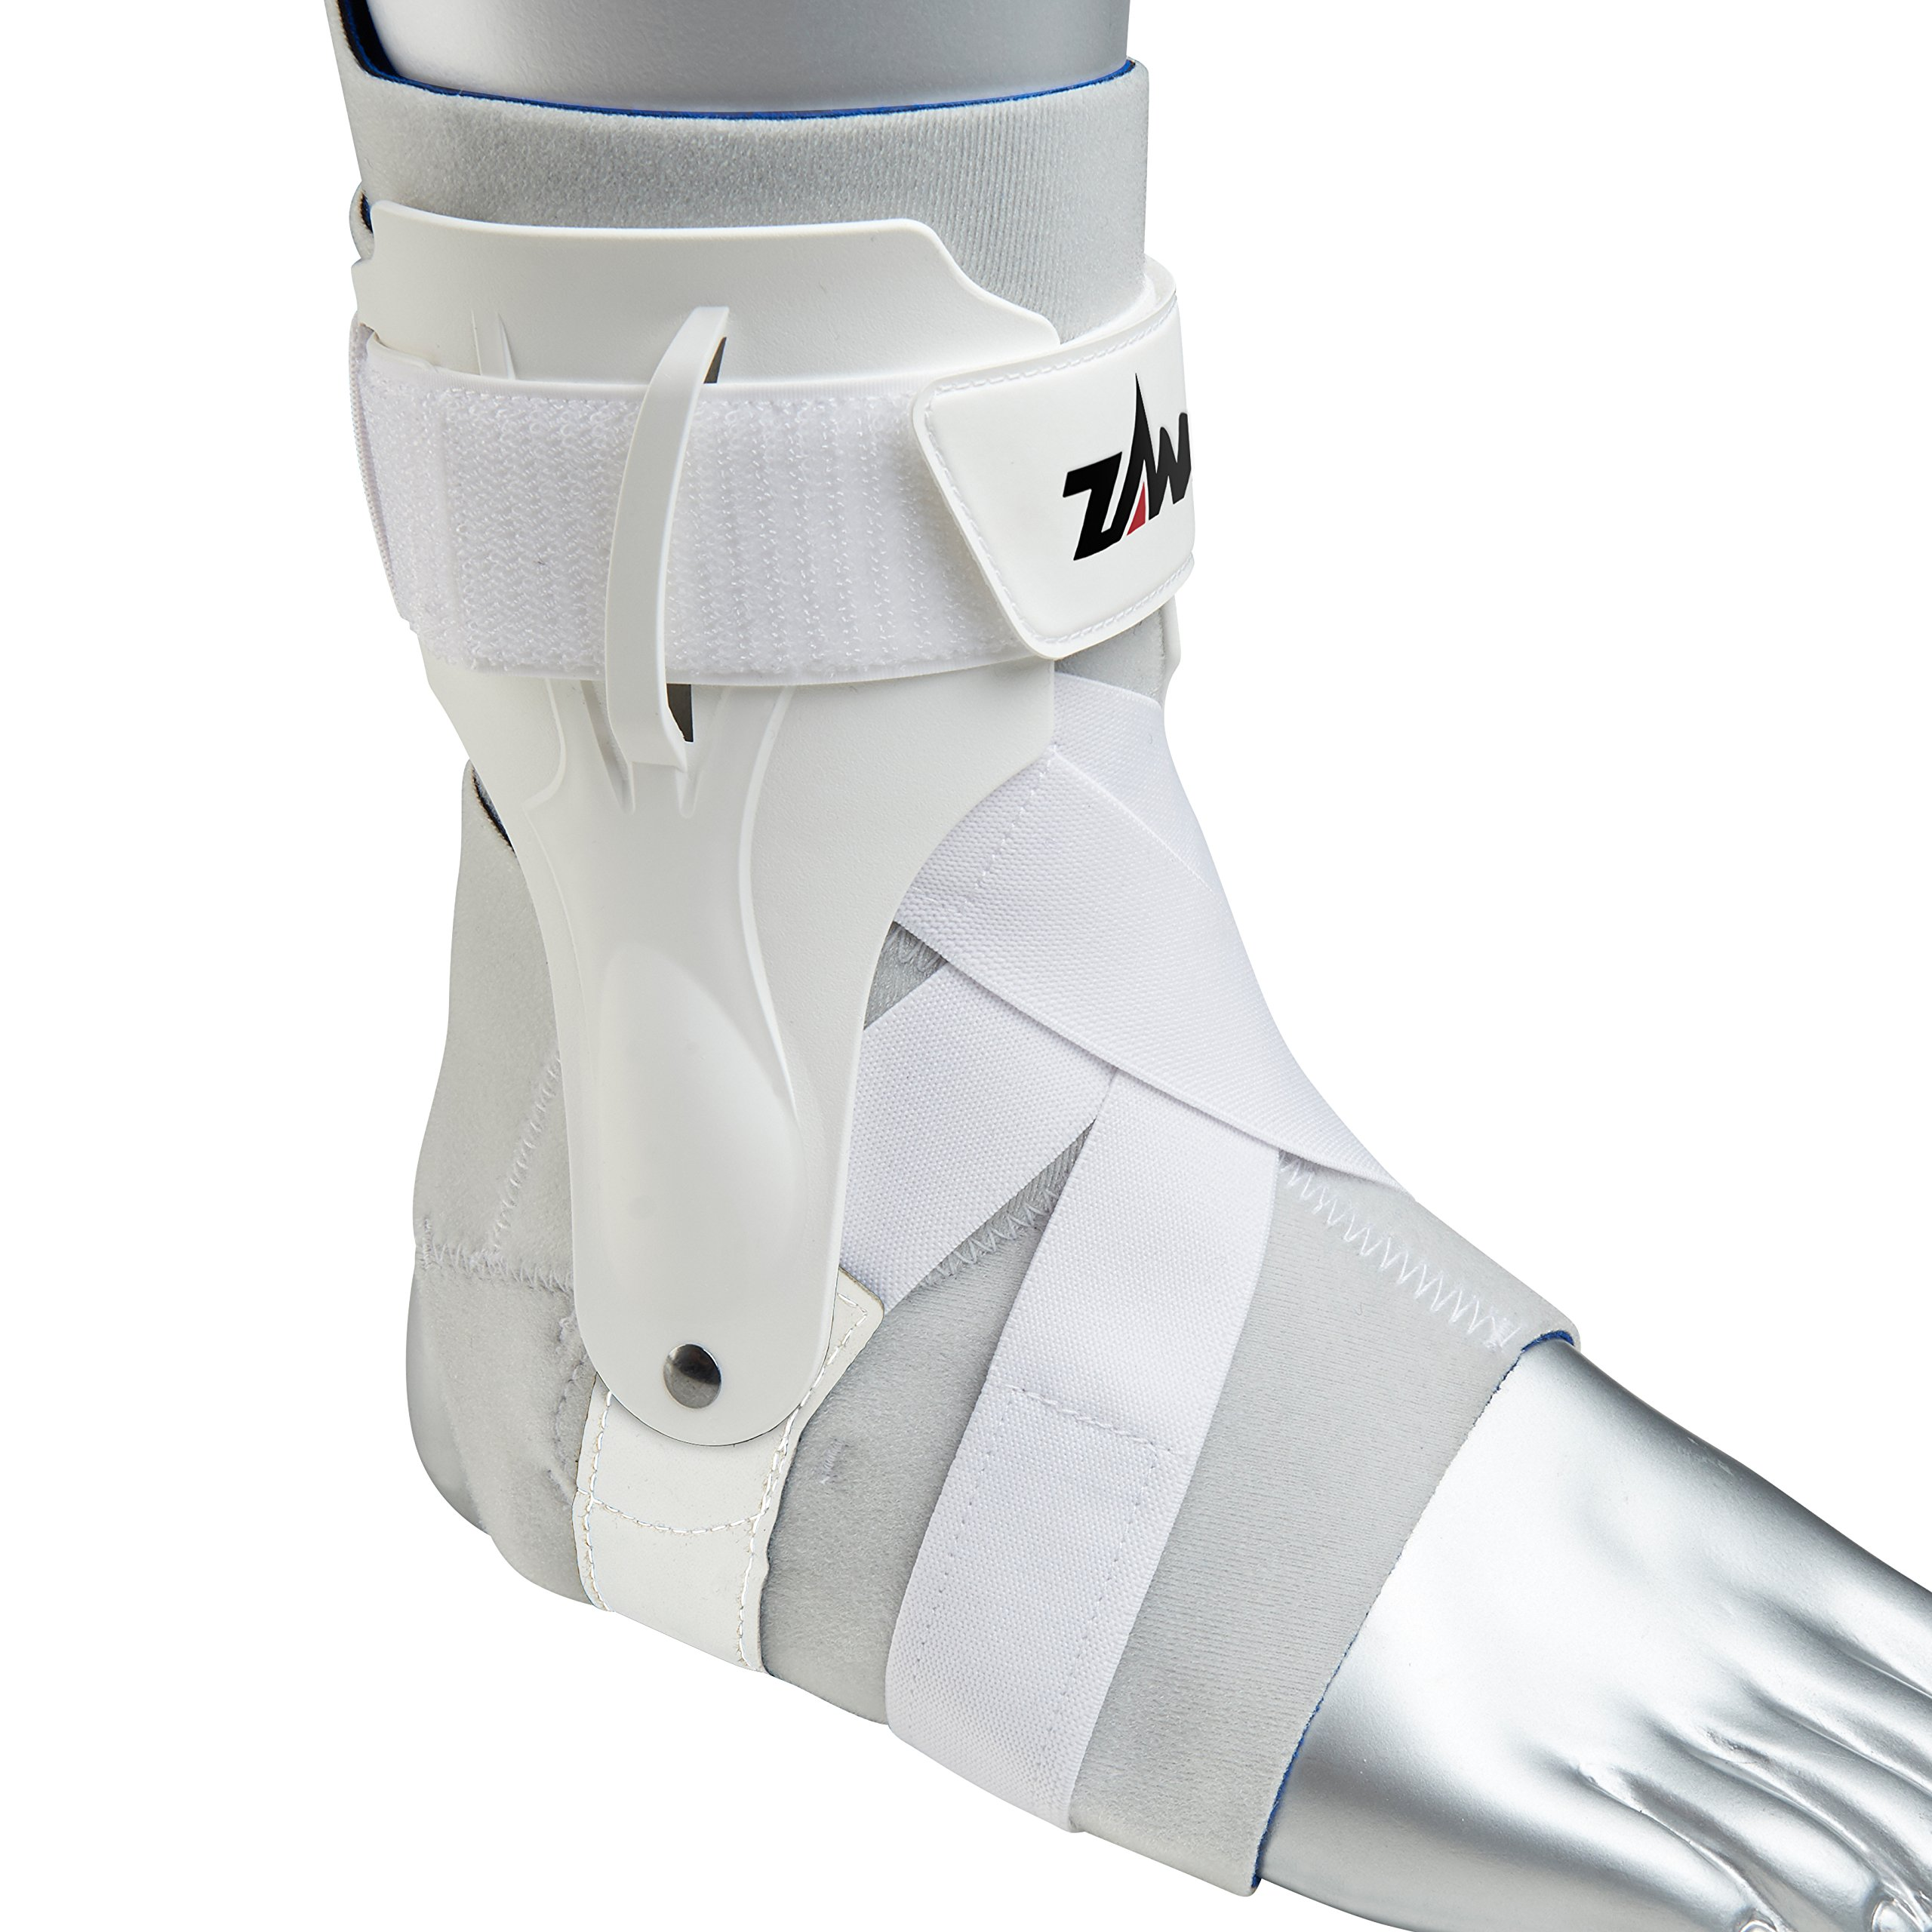 Zamst Ankle Brace Support Stabilizer: A2-DX Mens & Womens Sports Brace for Basketball, Soccer, Volleyball, Football & Baseball,White,Left,X-Large by Zamst (Image #2)